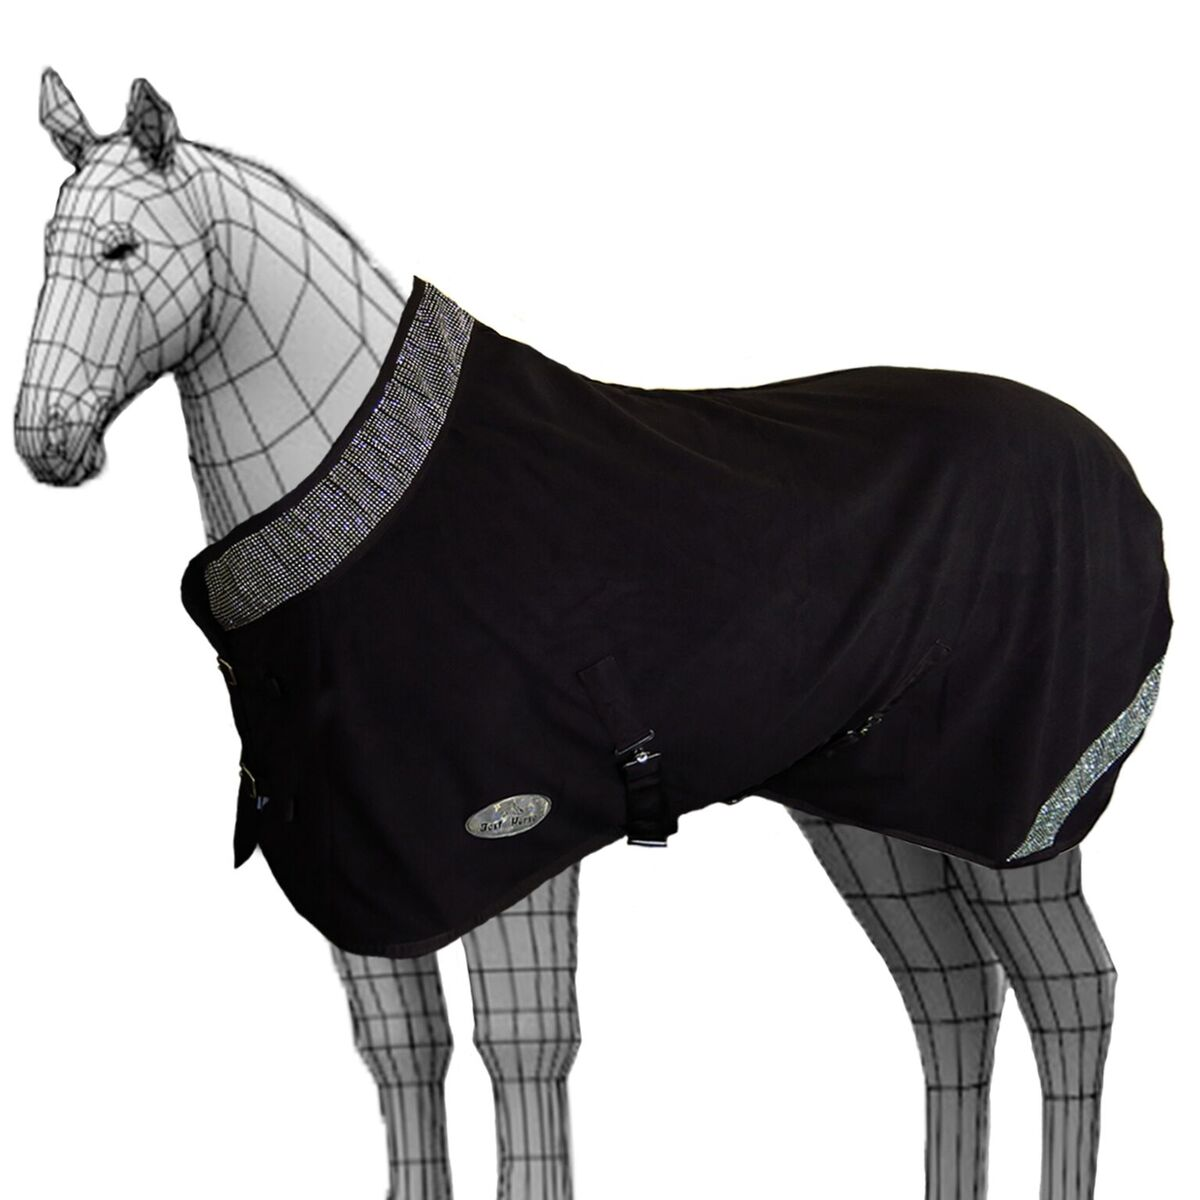 Details About Pony Horse Riding Winter Warm Comfy Crystal Fleece Normal Neck Sheet Rug